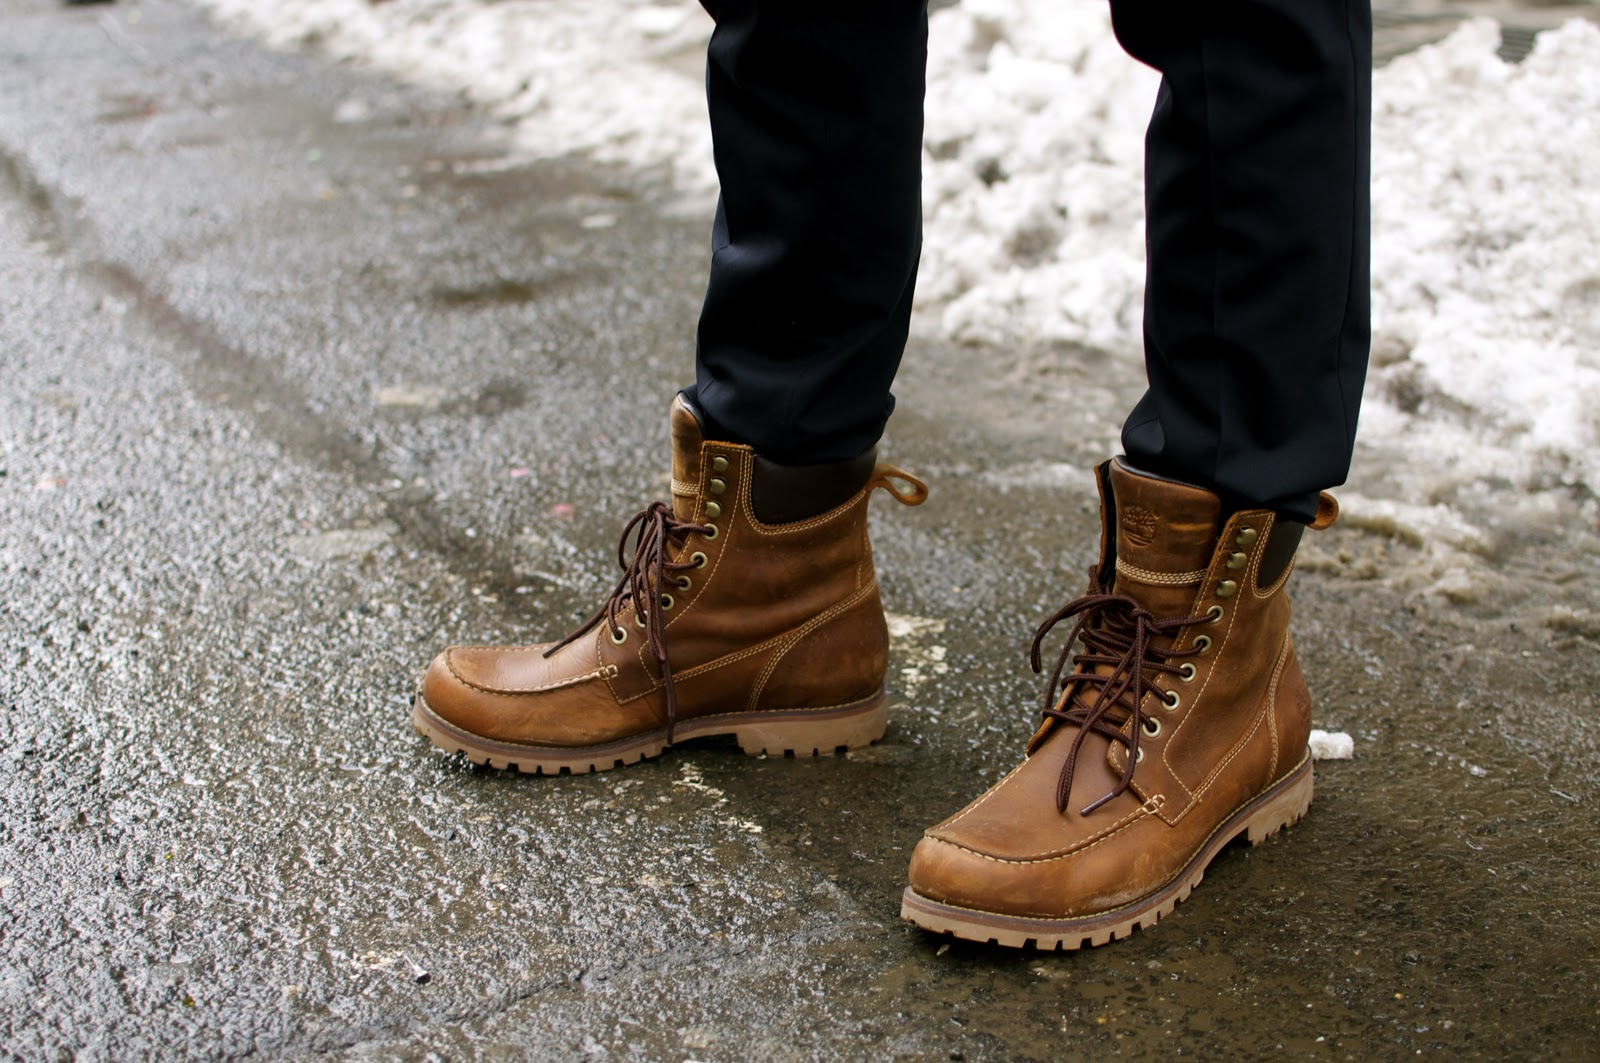 Mens Winter Boots With Good Traction | Santa Barbara Institute for ...